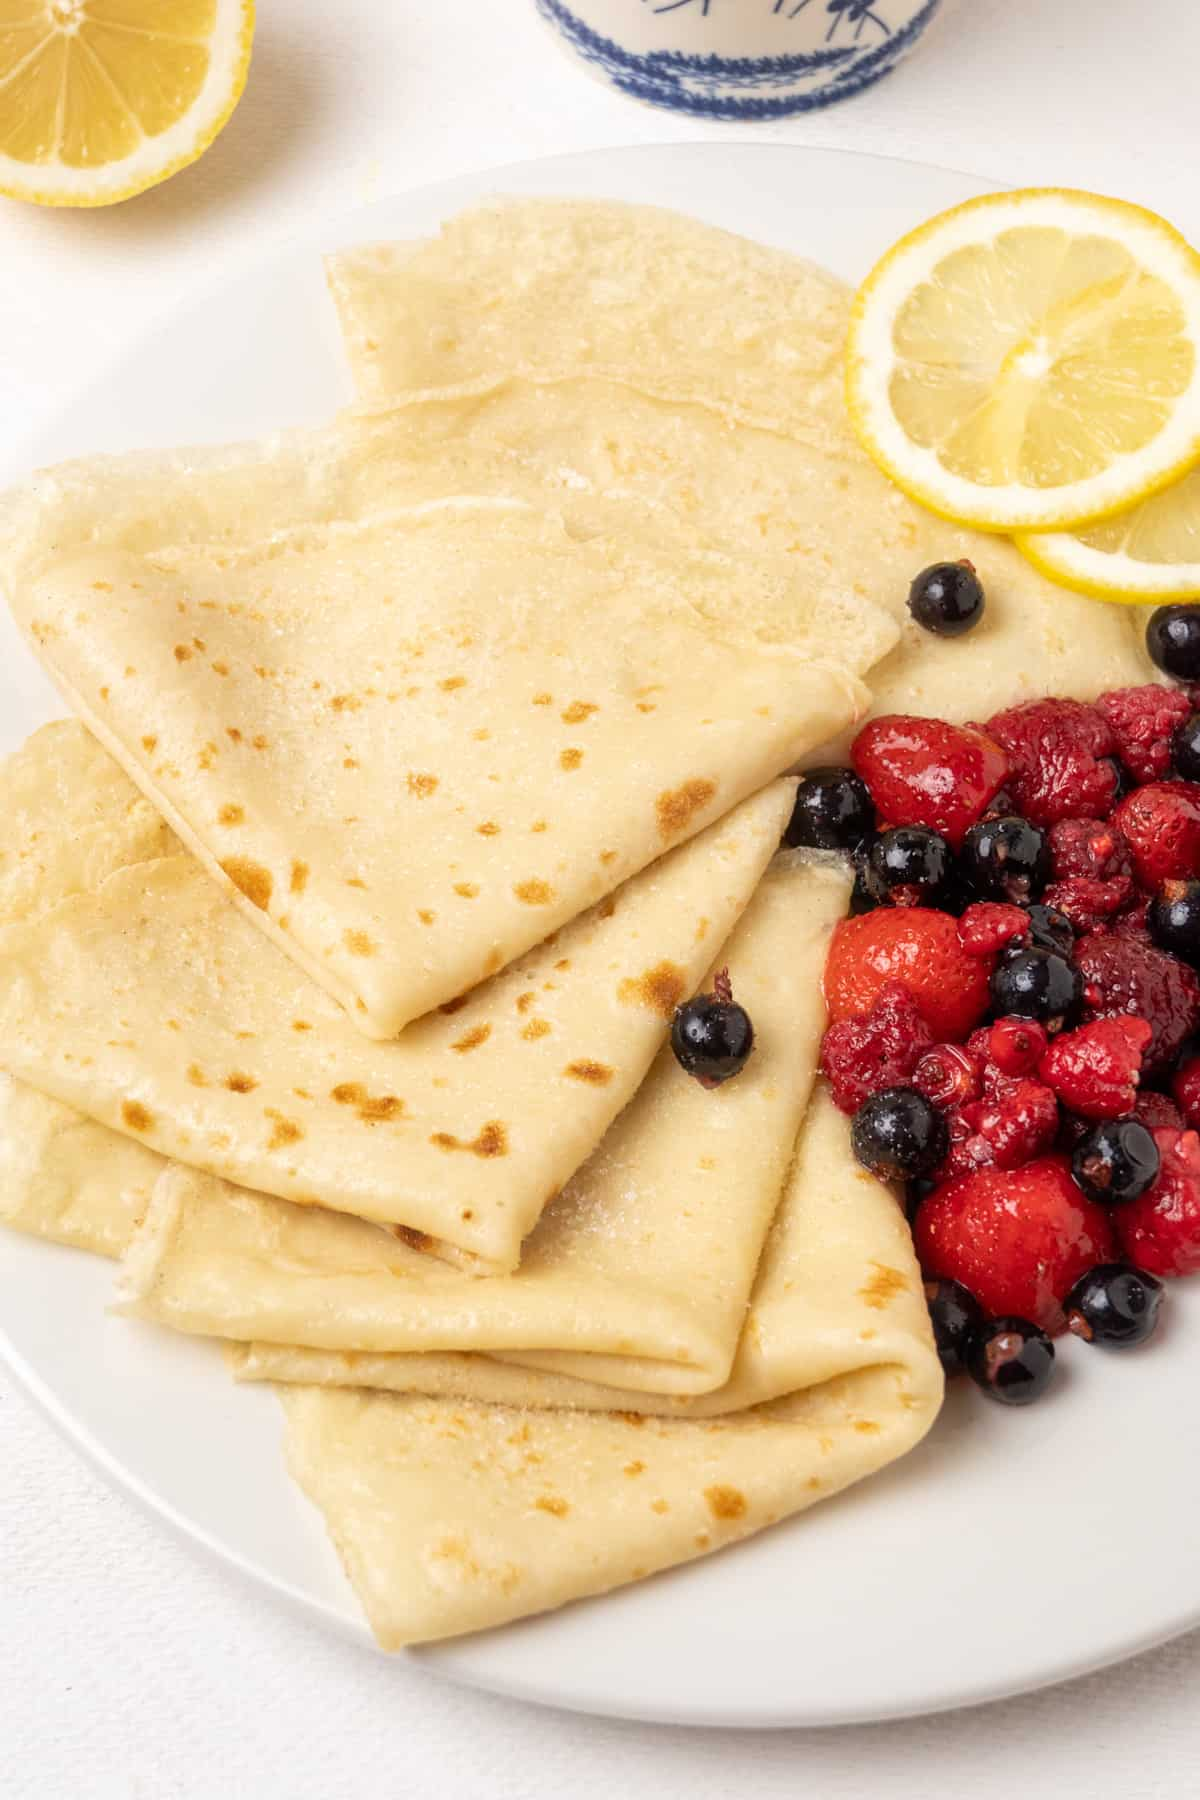 Folded vegan crepes on a plate with fruit and lemon.